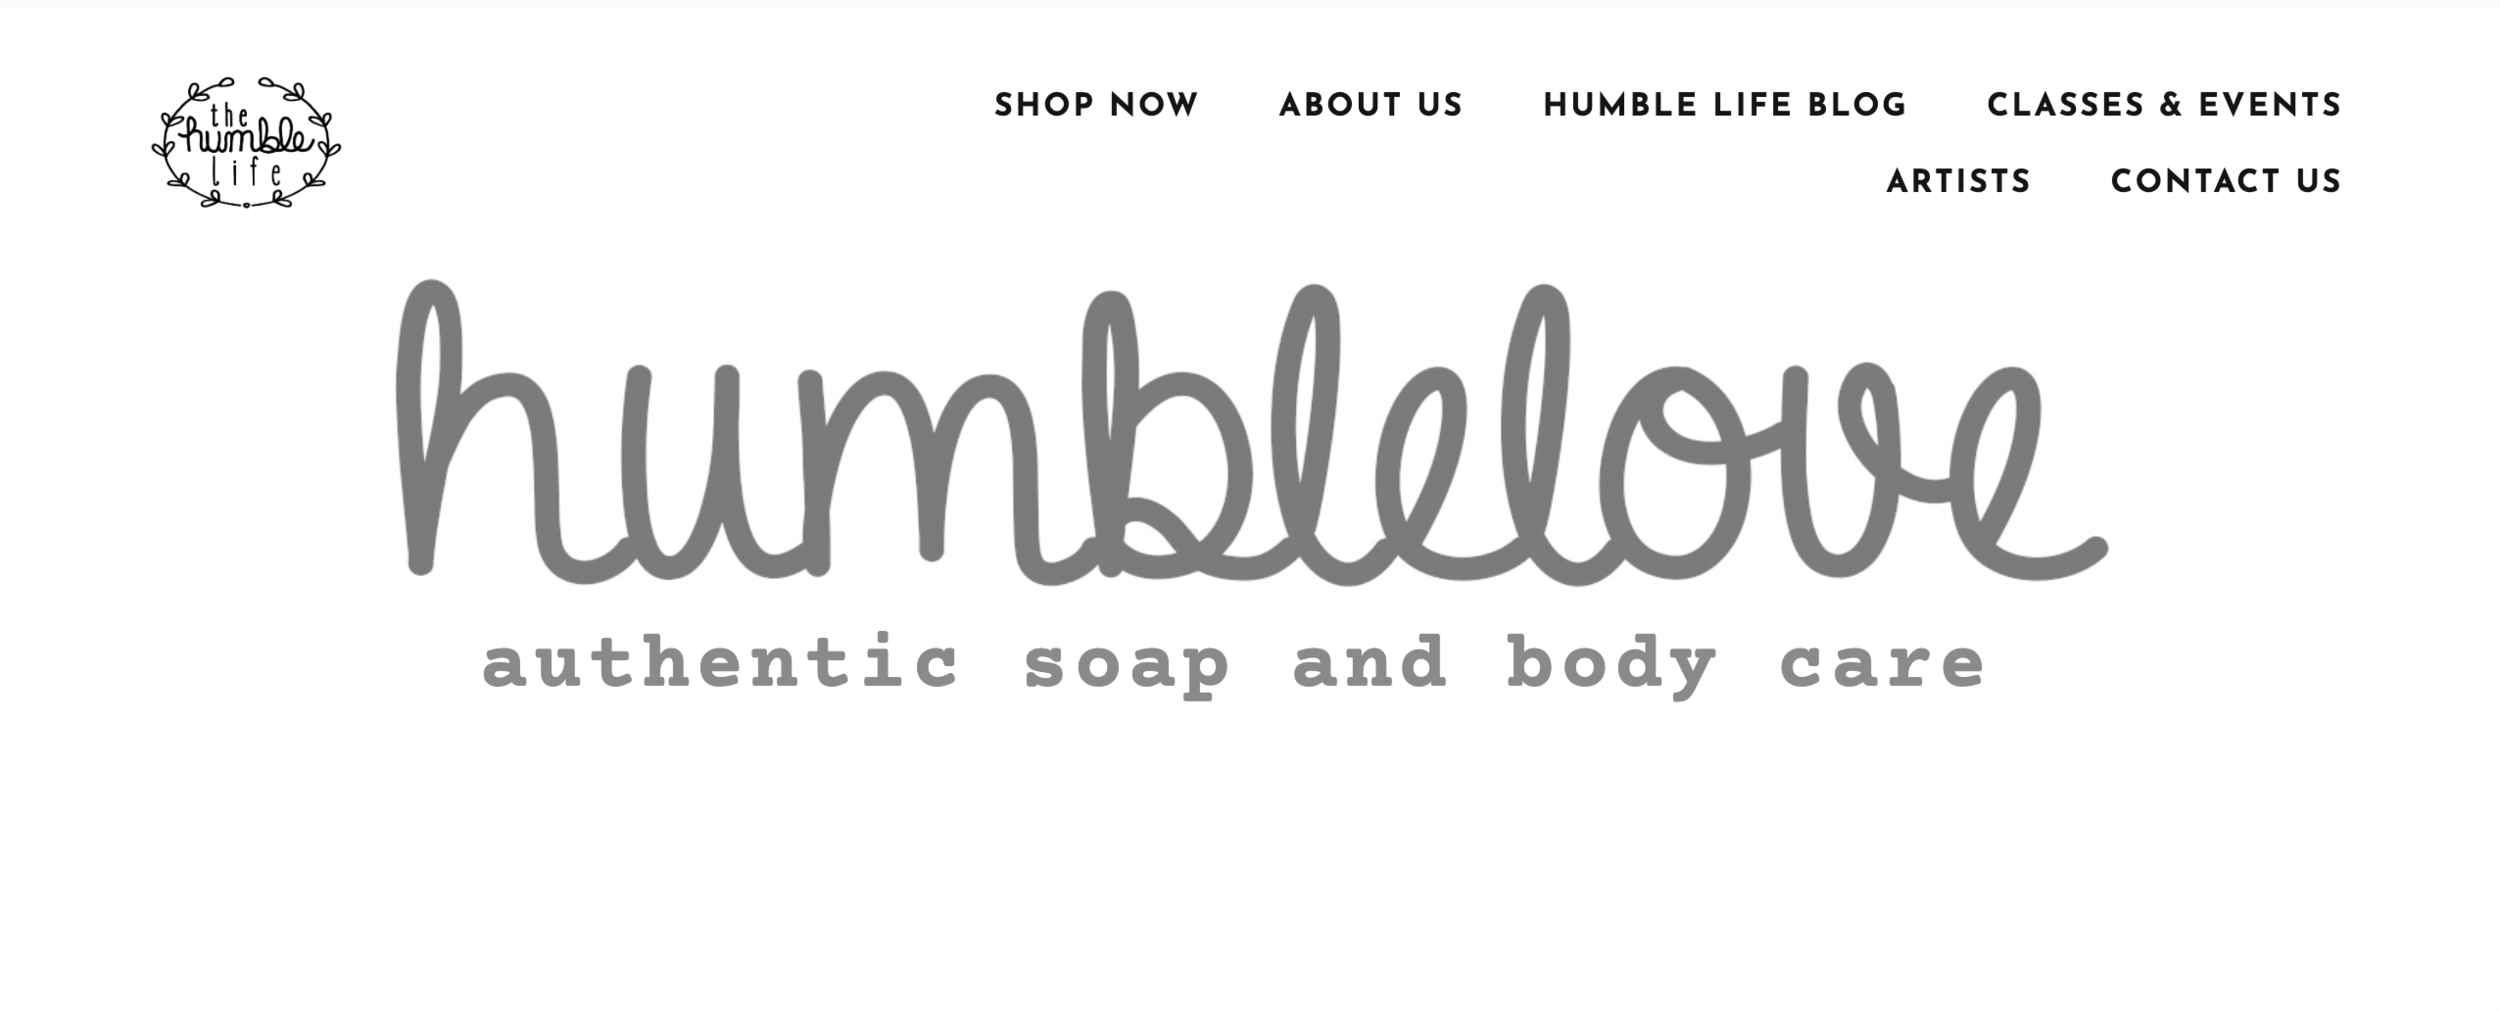 The humble life store -